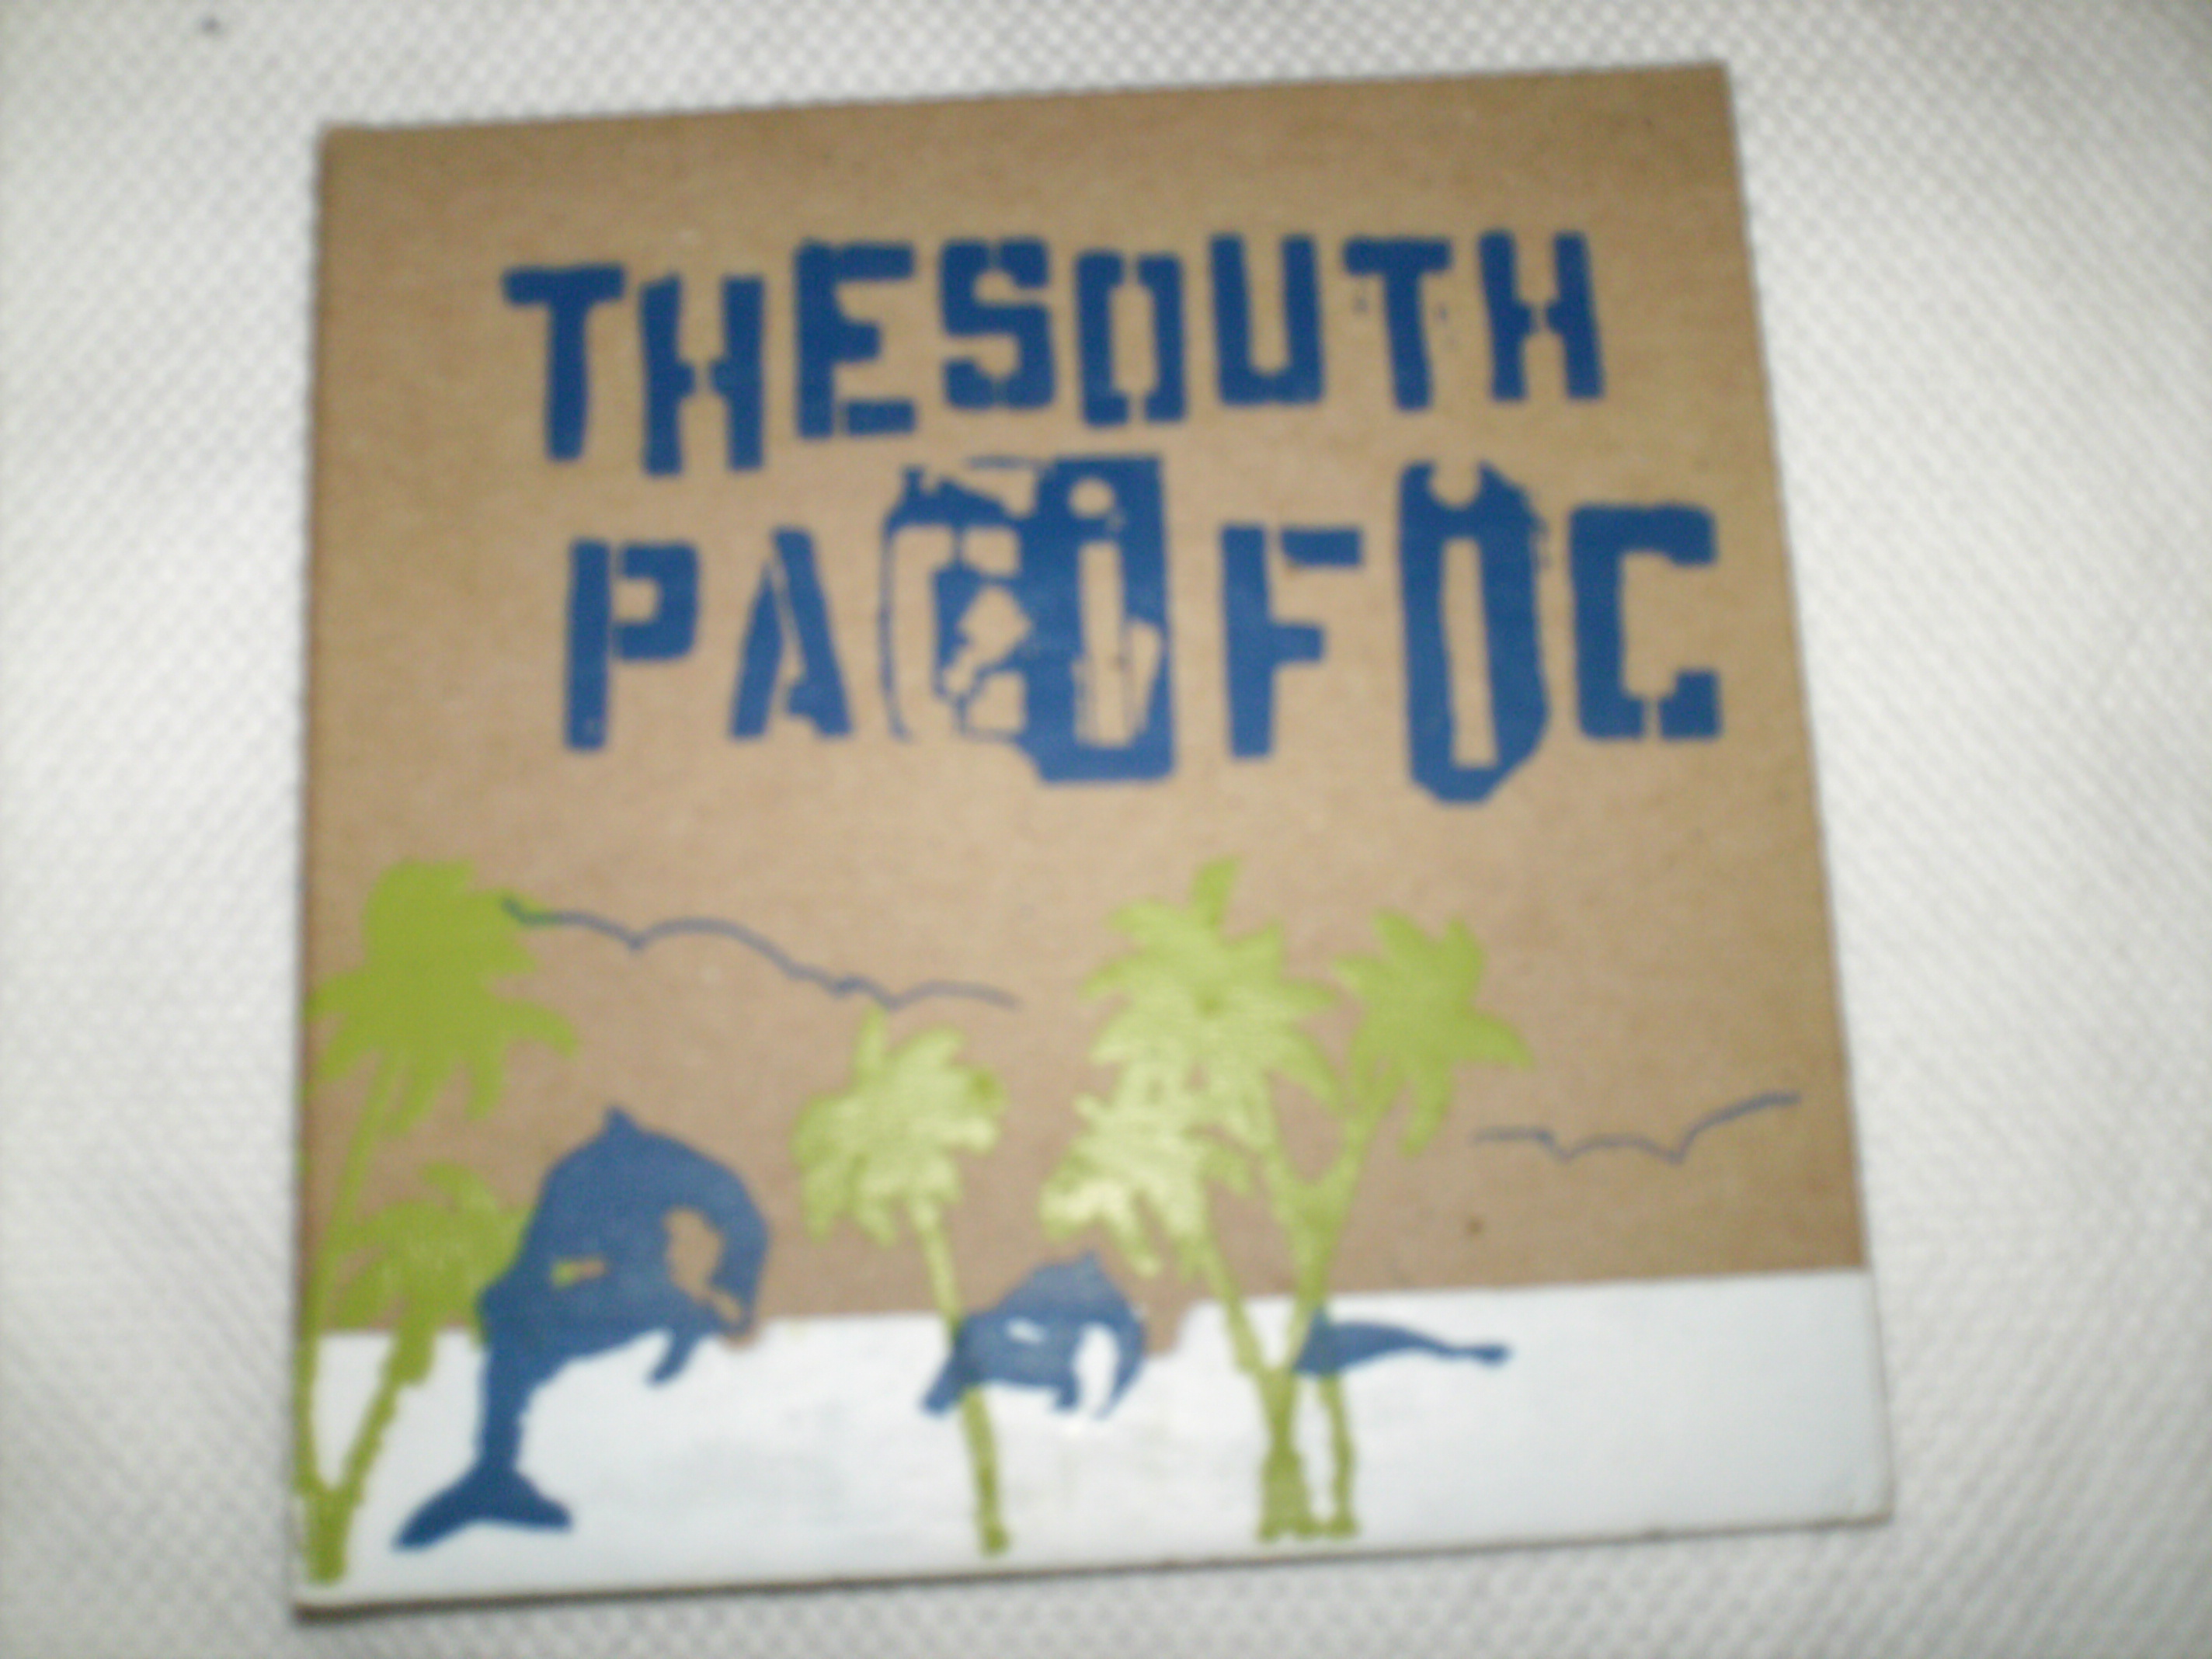 The South - Pacific